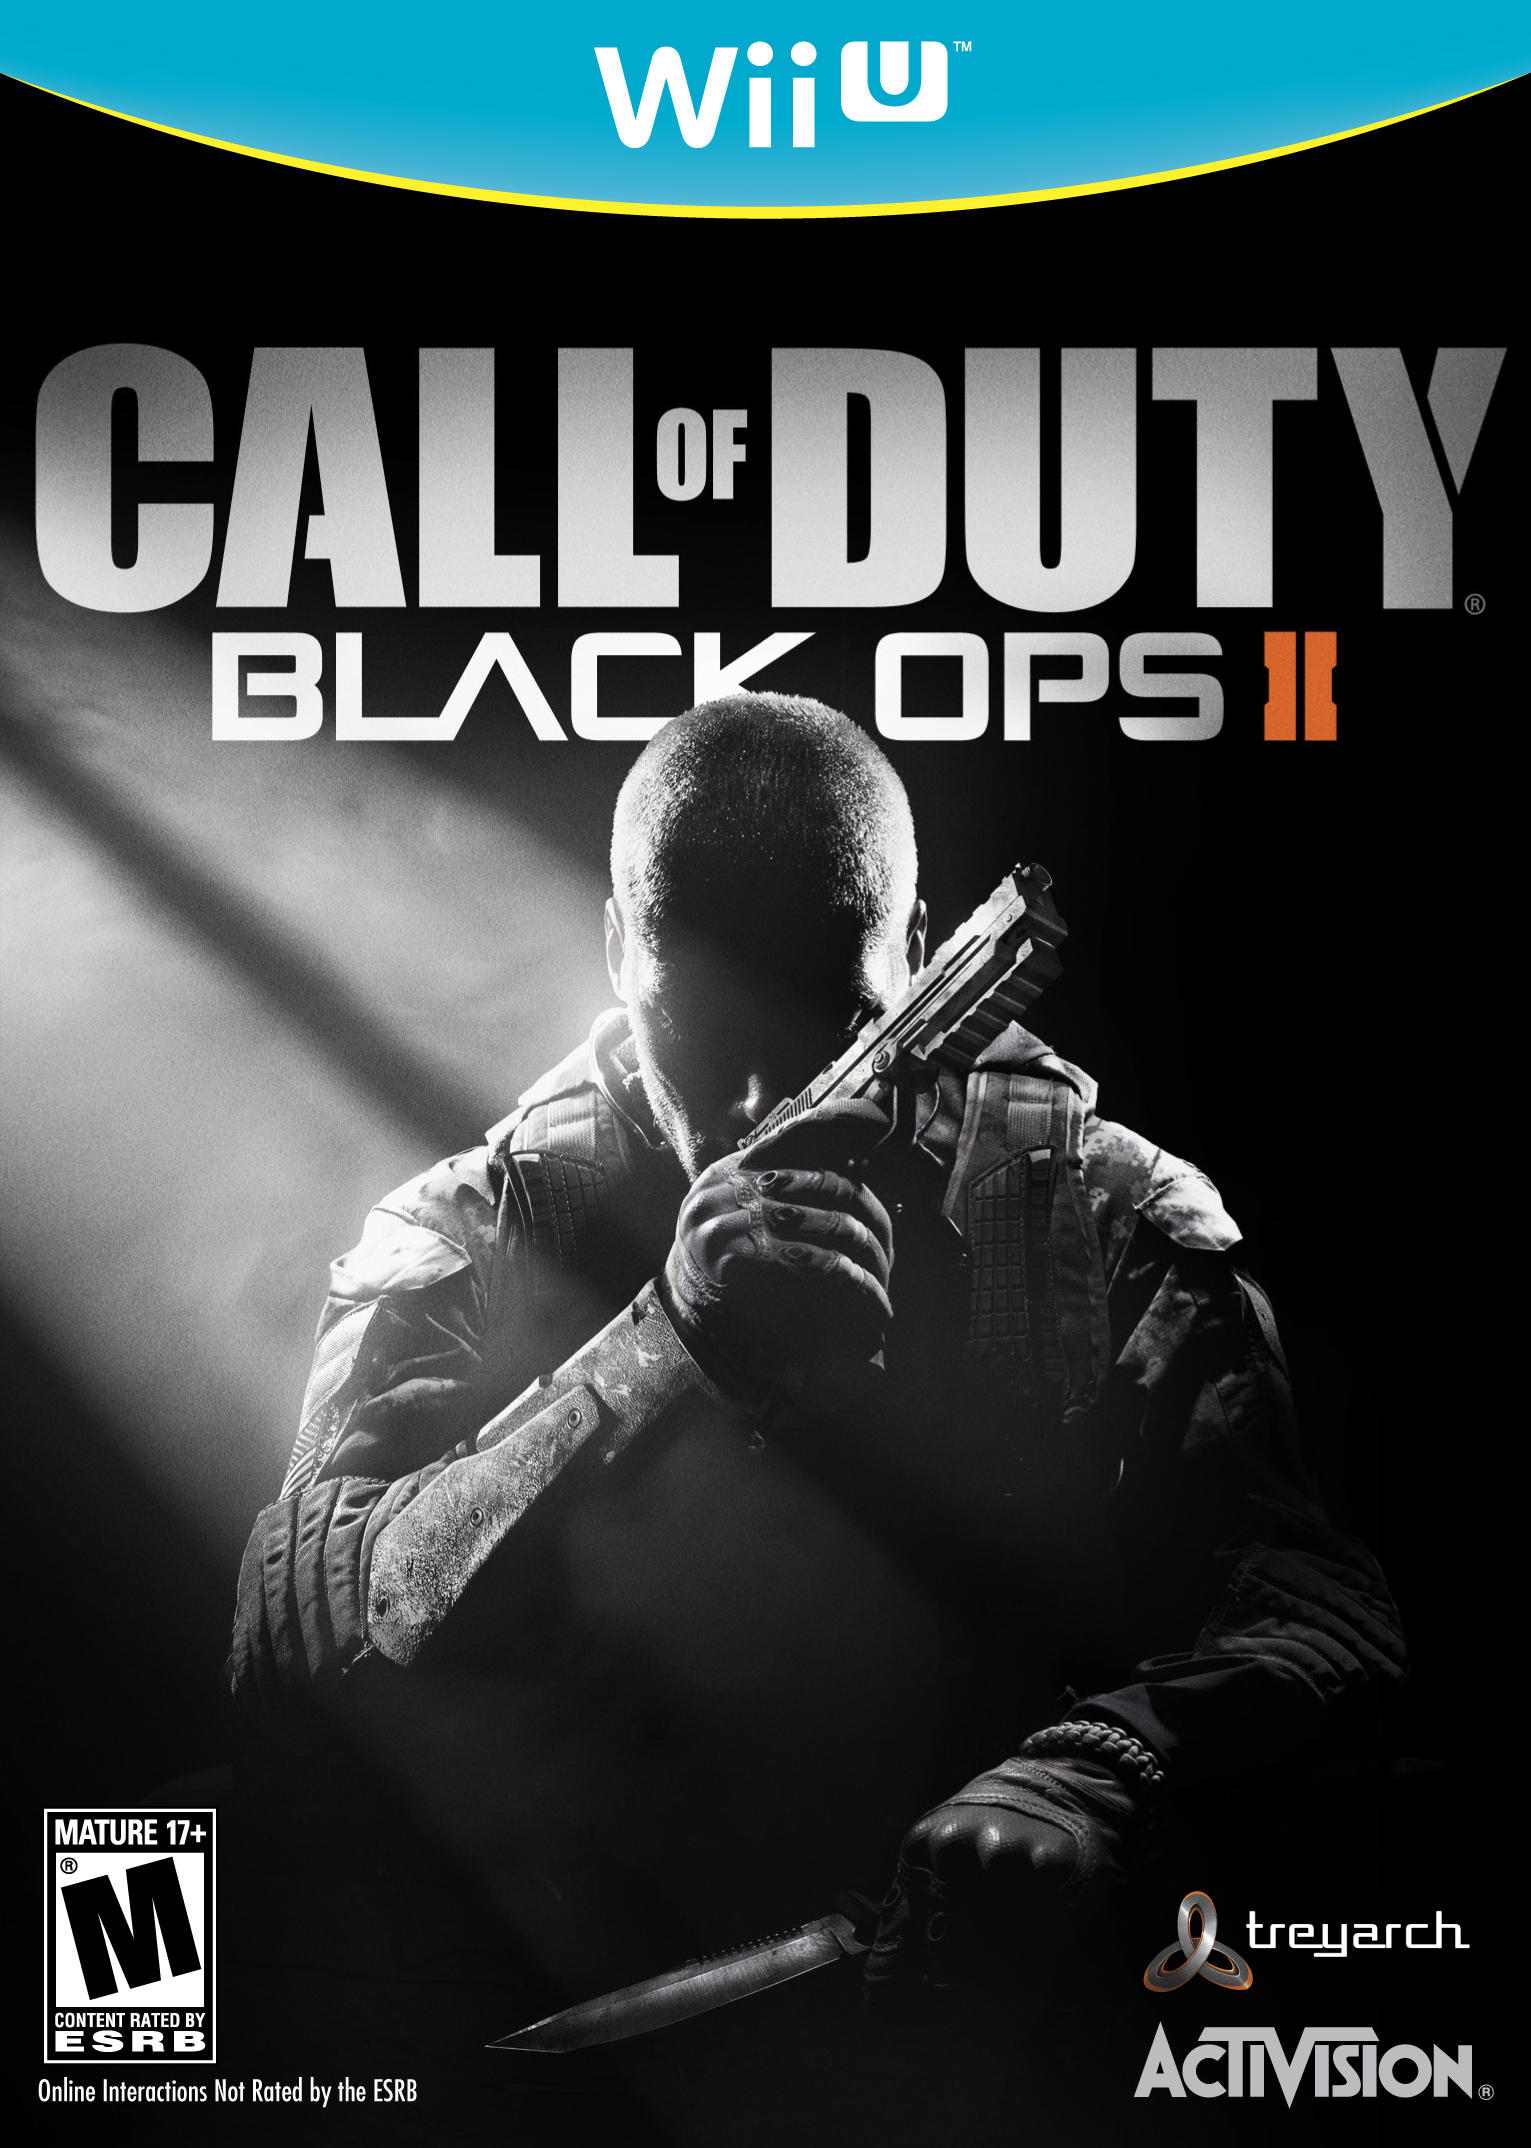 L-Rick2919207cCall_of_Duty_Black_Ops_II_WiiUFOB